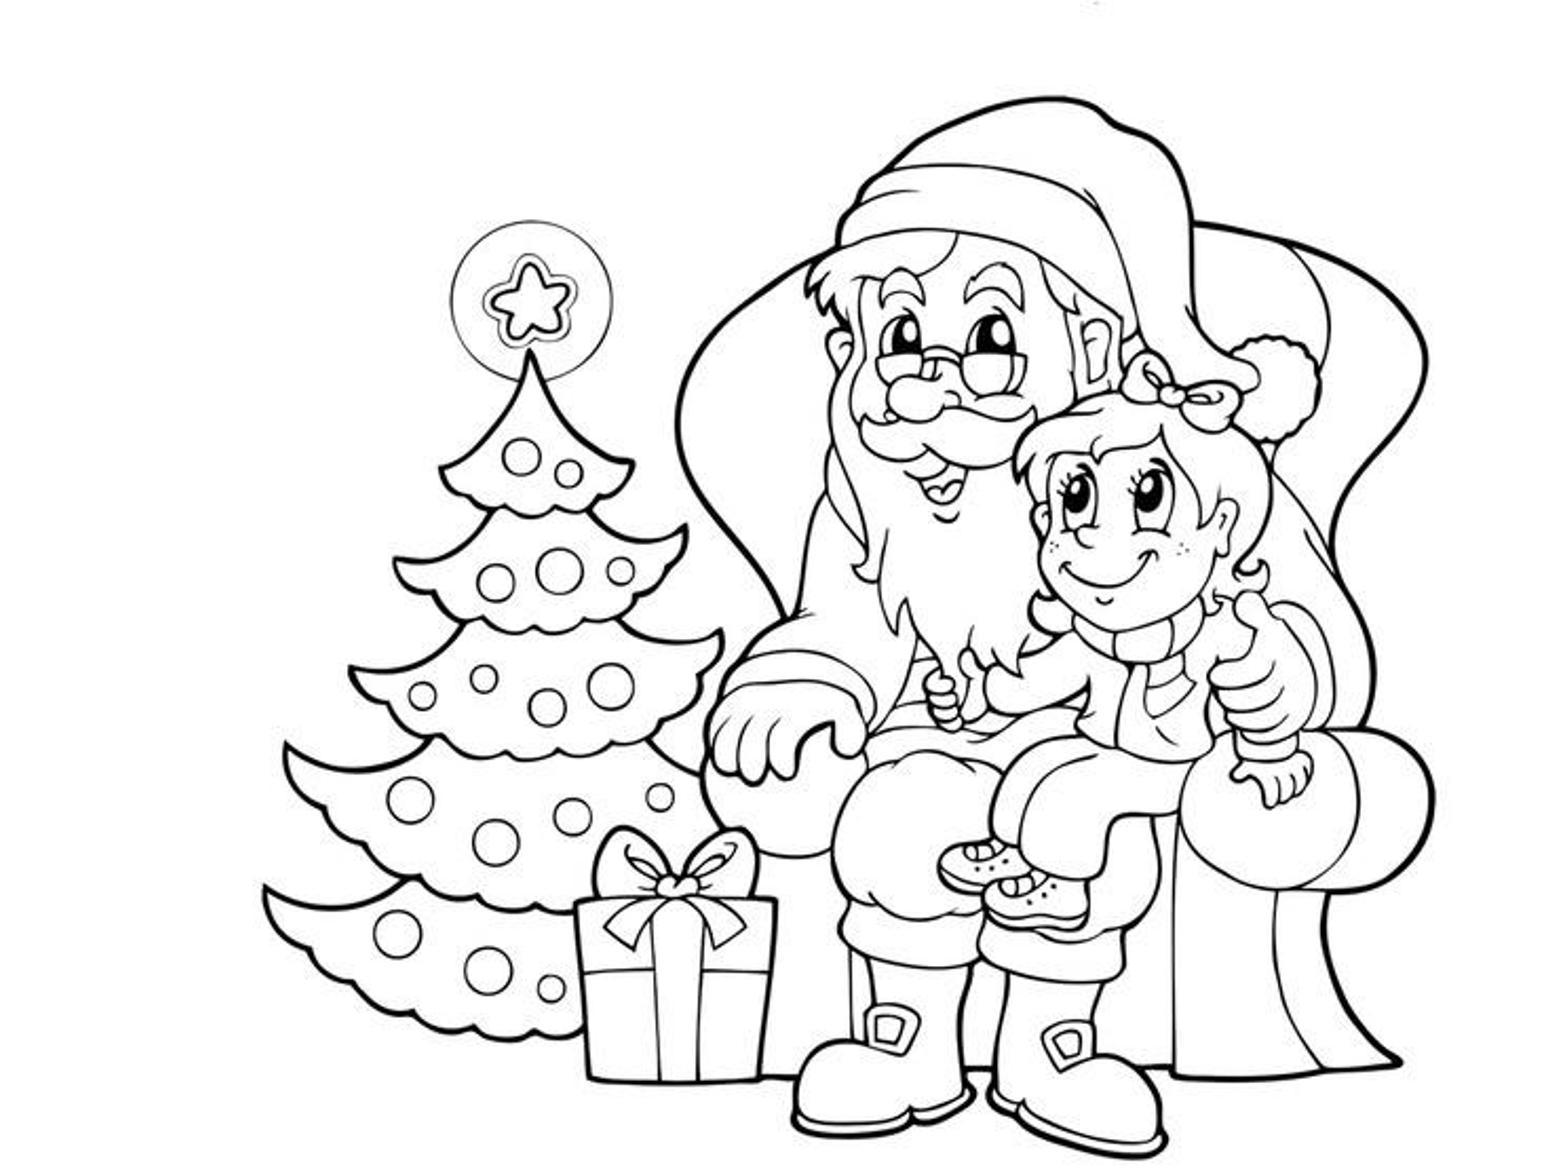 santa claus coloring pictures santa claus coloring pages to download and print for free claus pictures santa coloring